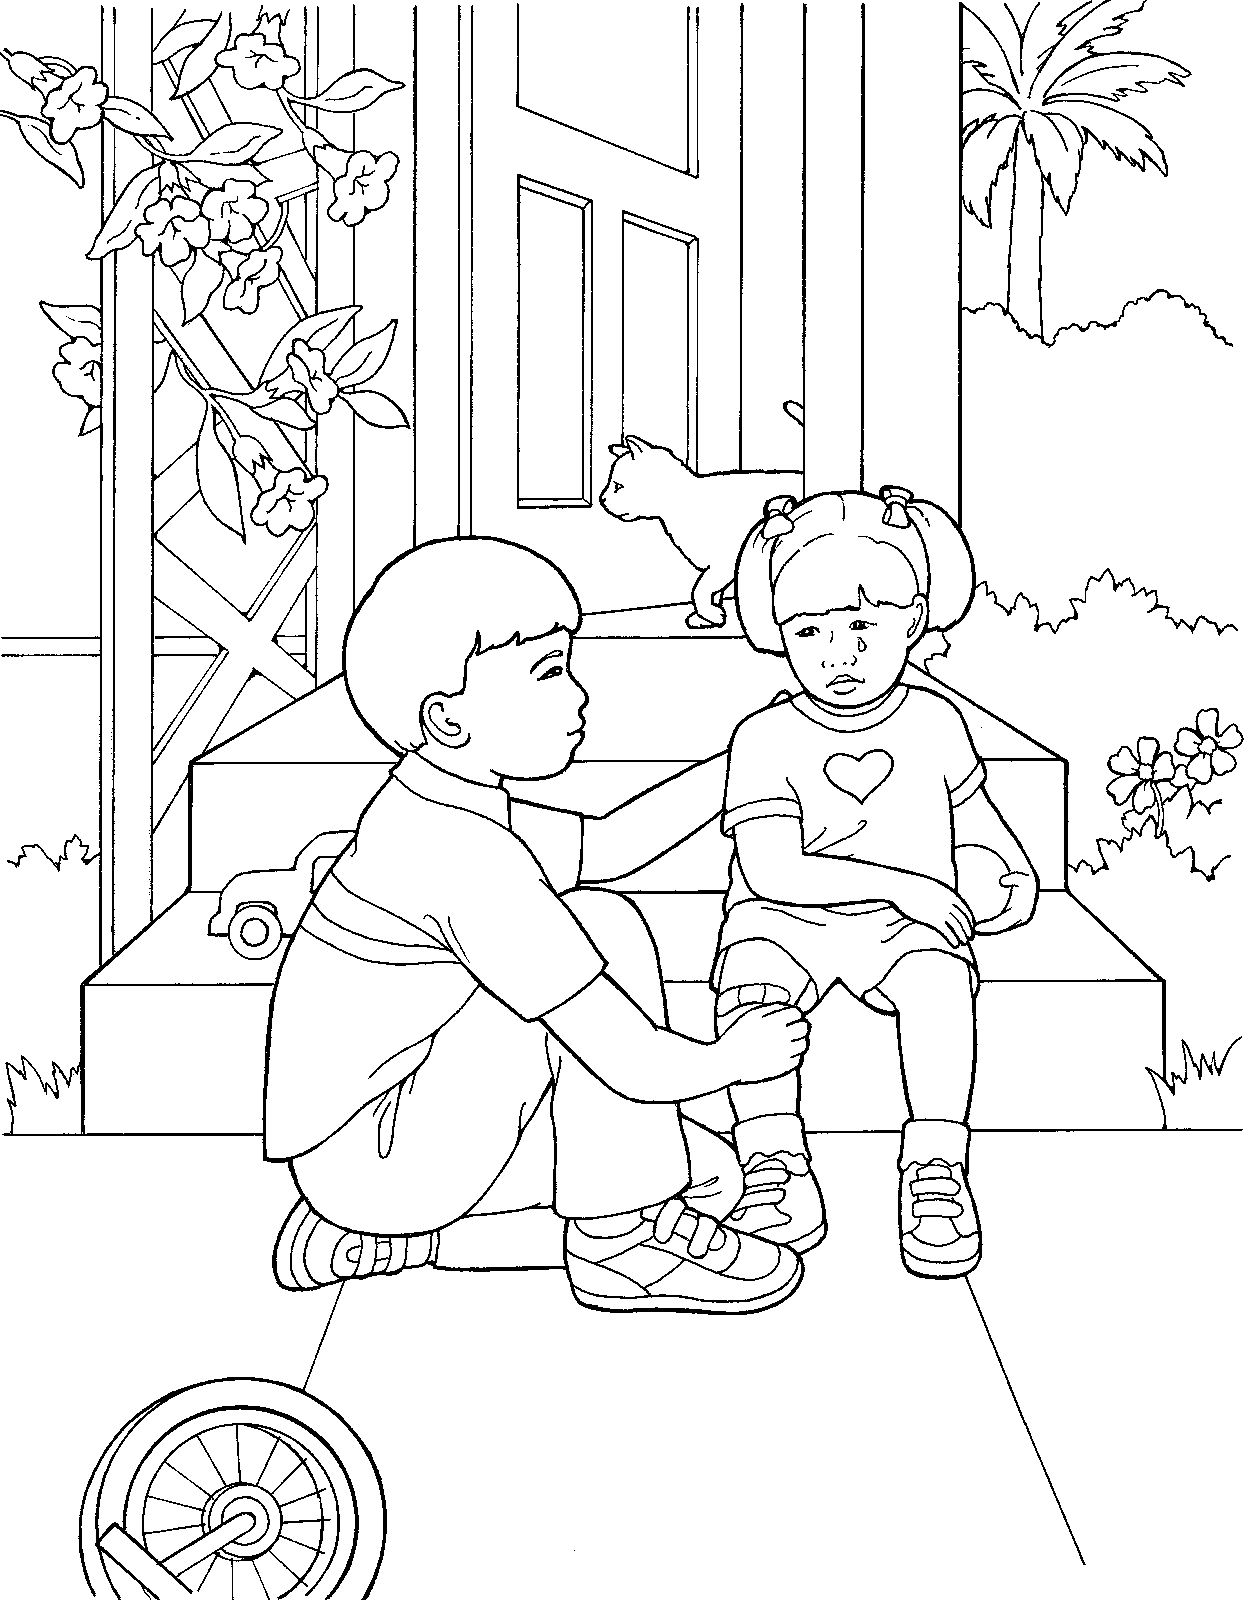 primary coloring pages pin by jayne atwood on primary lds coloring pages lds coloring pages primary